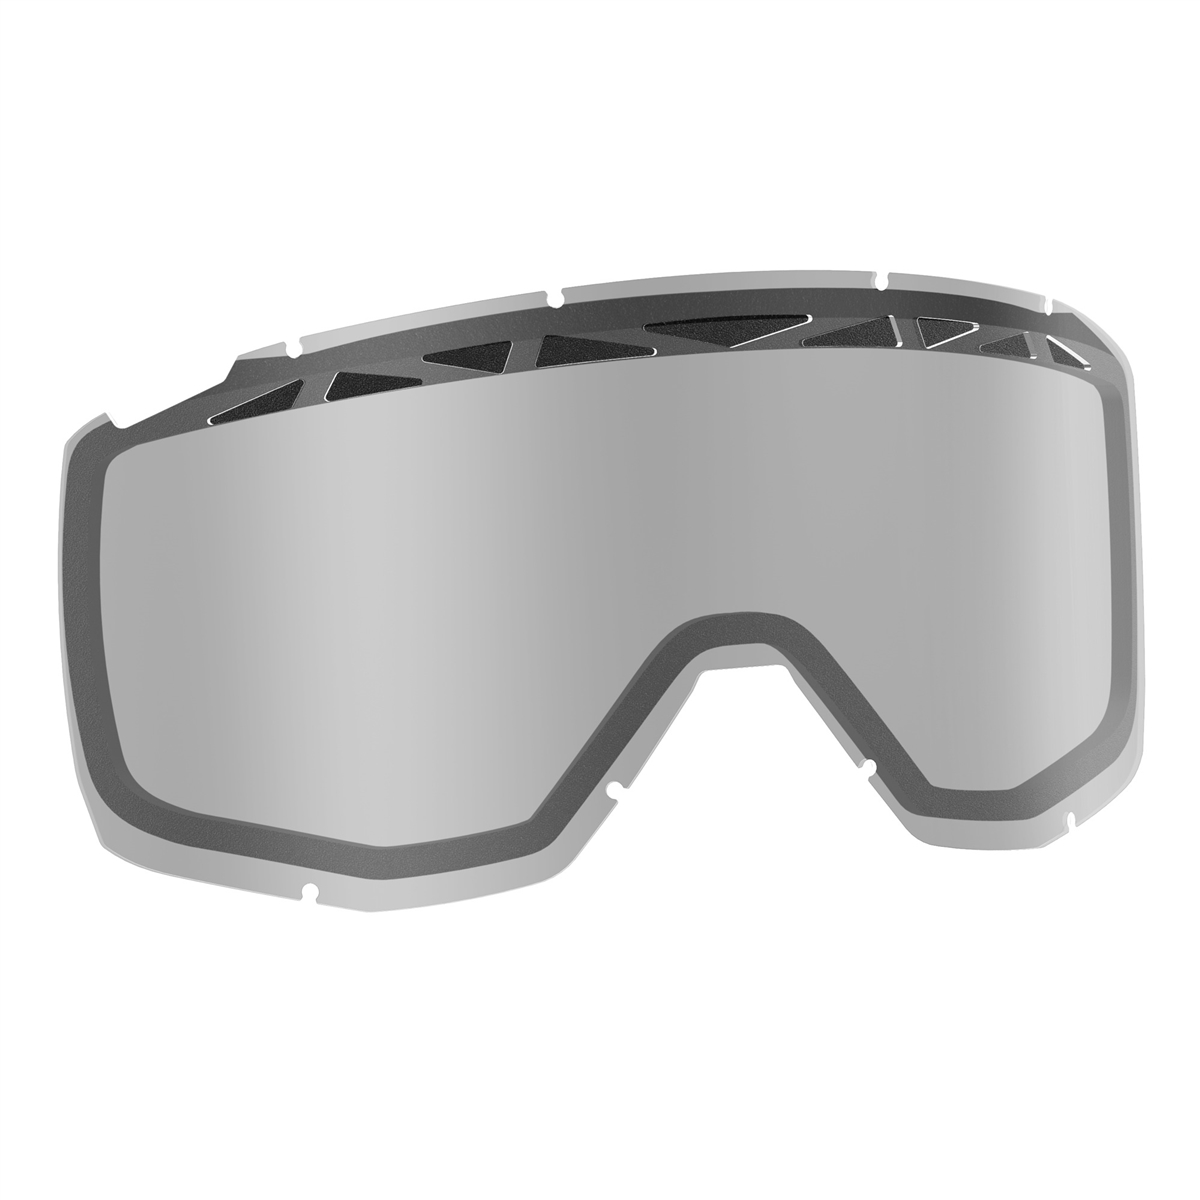 Replacement Double lens with ACS for HUSTLE/PRIMAL/SPLIT OTG/TYRANT Goggles - Clear Antifog